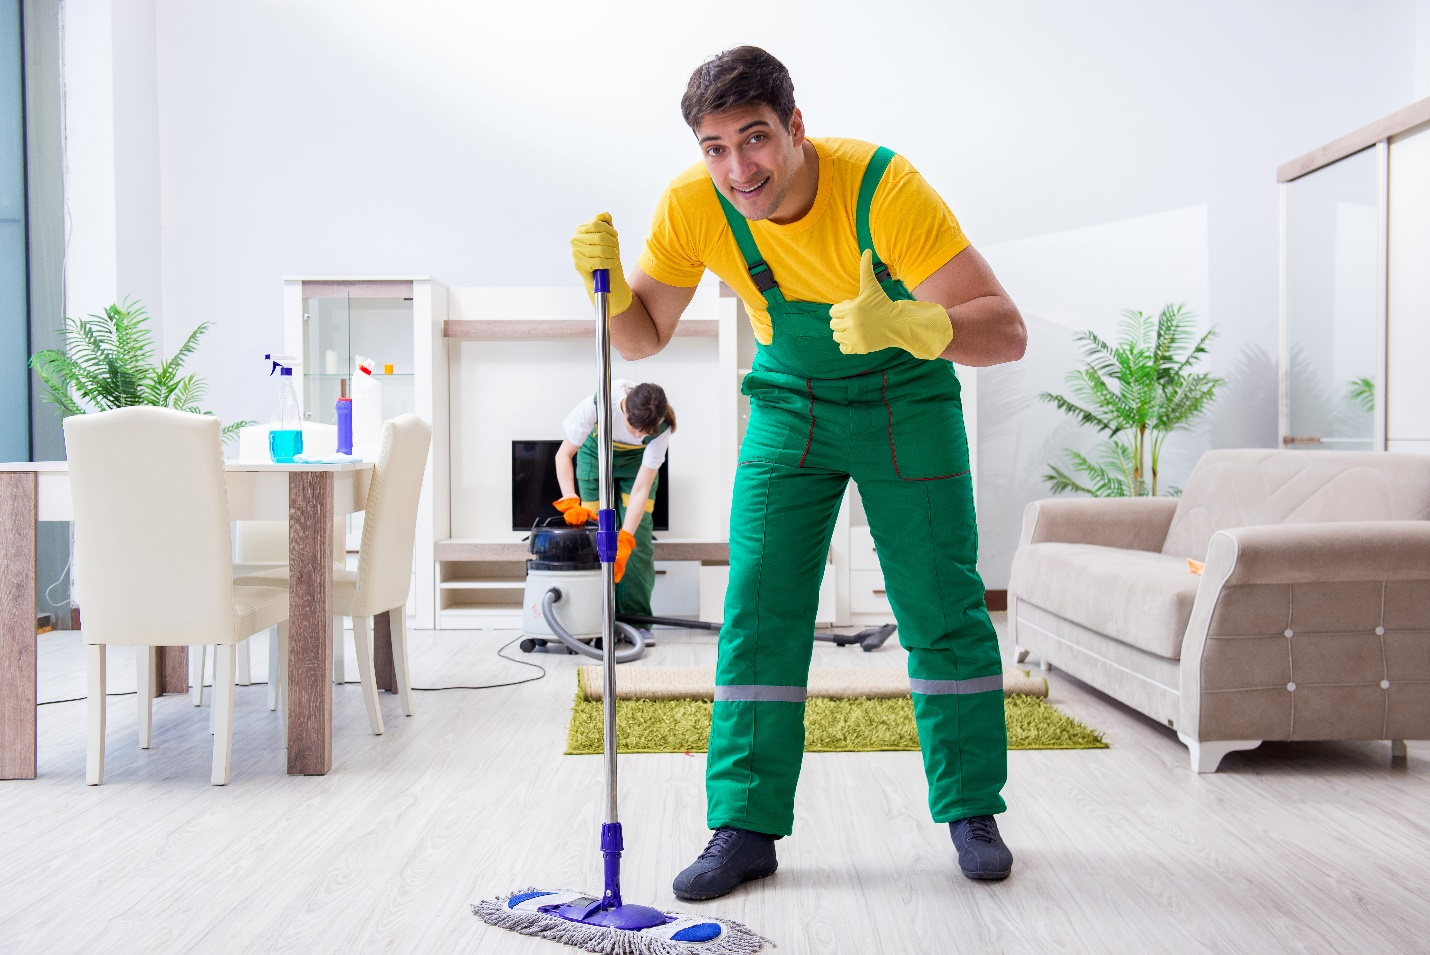 Man and woman from commercial cleaning services